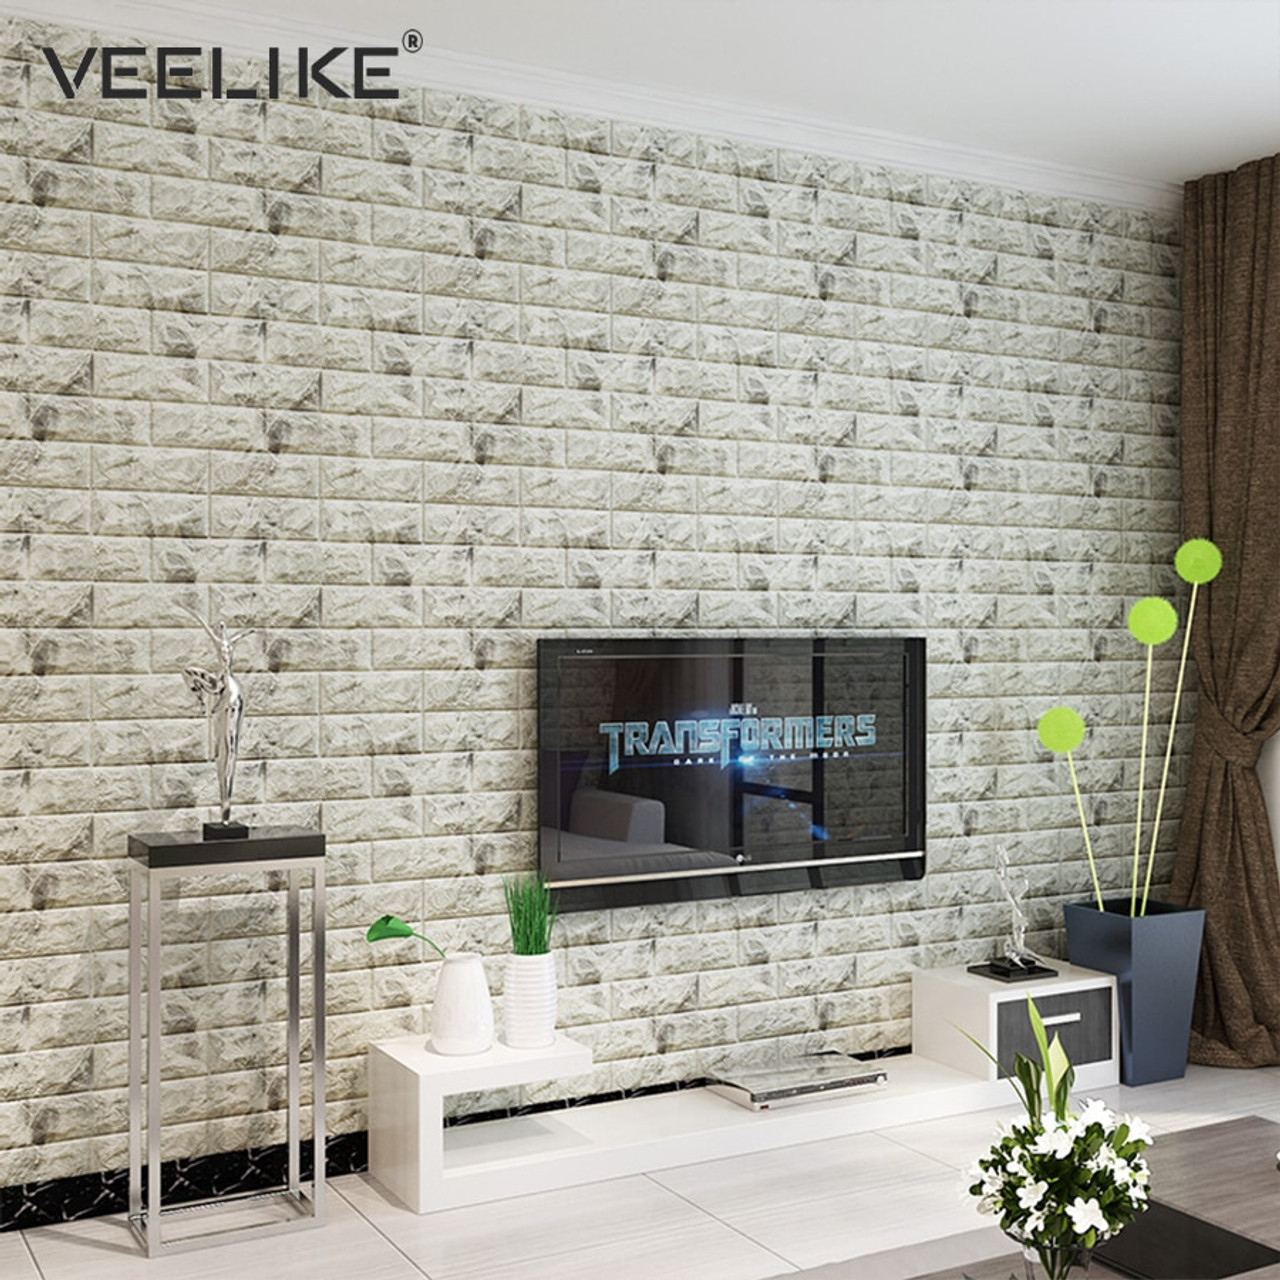 Waterproof Foam Brick 3d Wall Panel Diy Self Adhesive Wallpaper For Kids Room Bedroom Wall Decor 3d Brick Living Room Wall Paper Onshopdeals Com